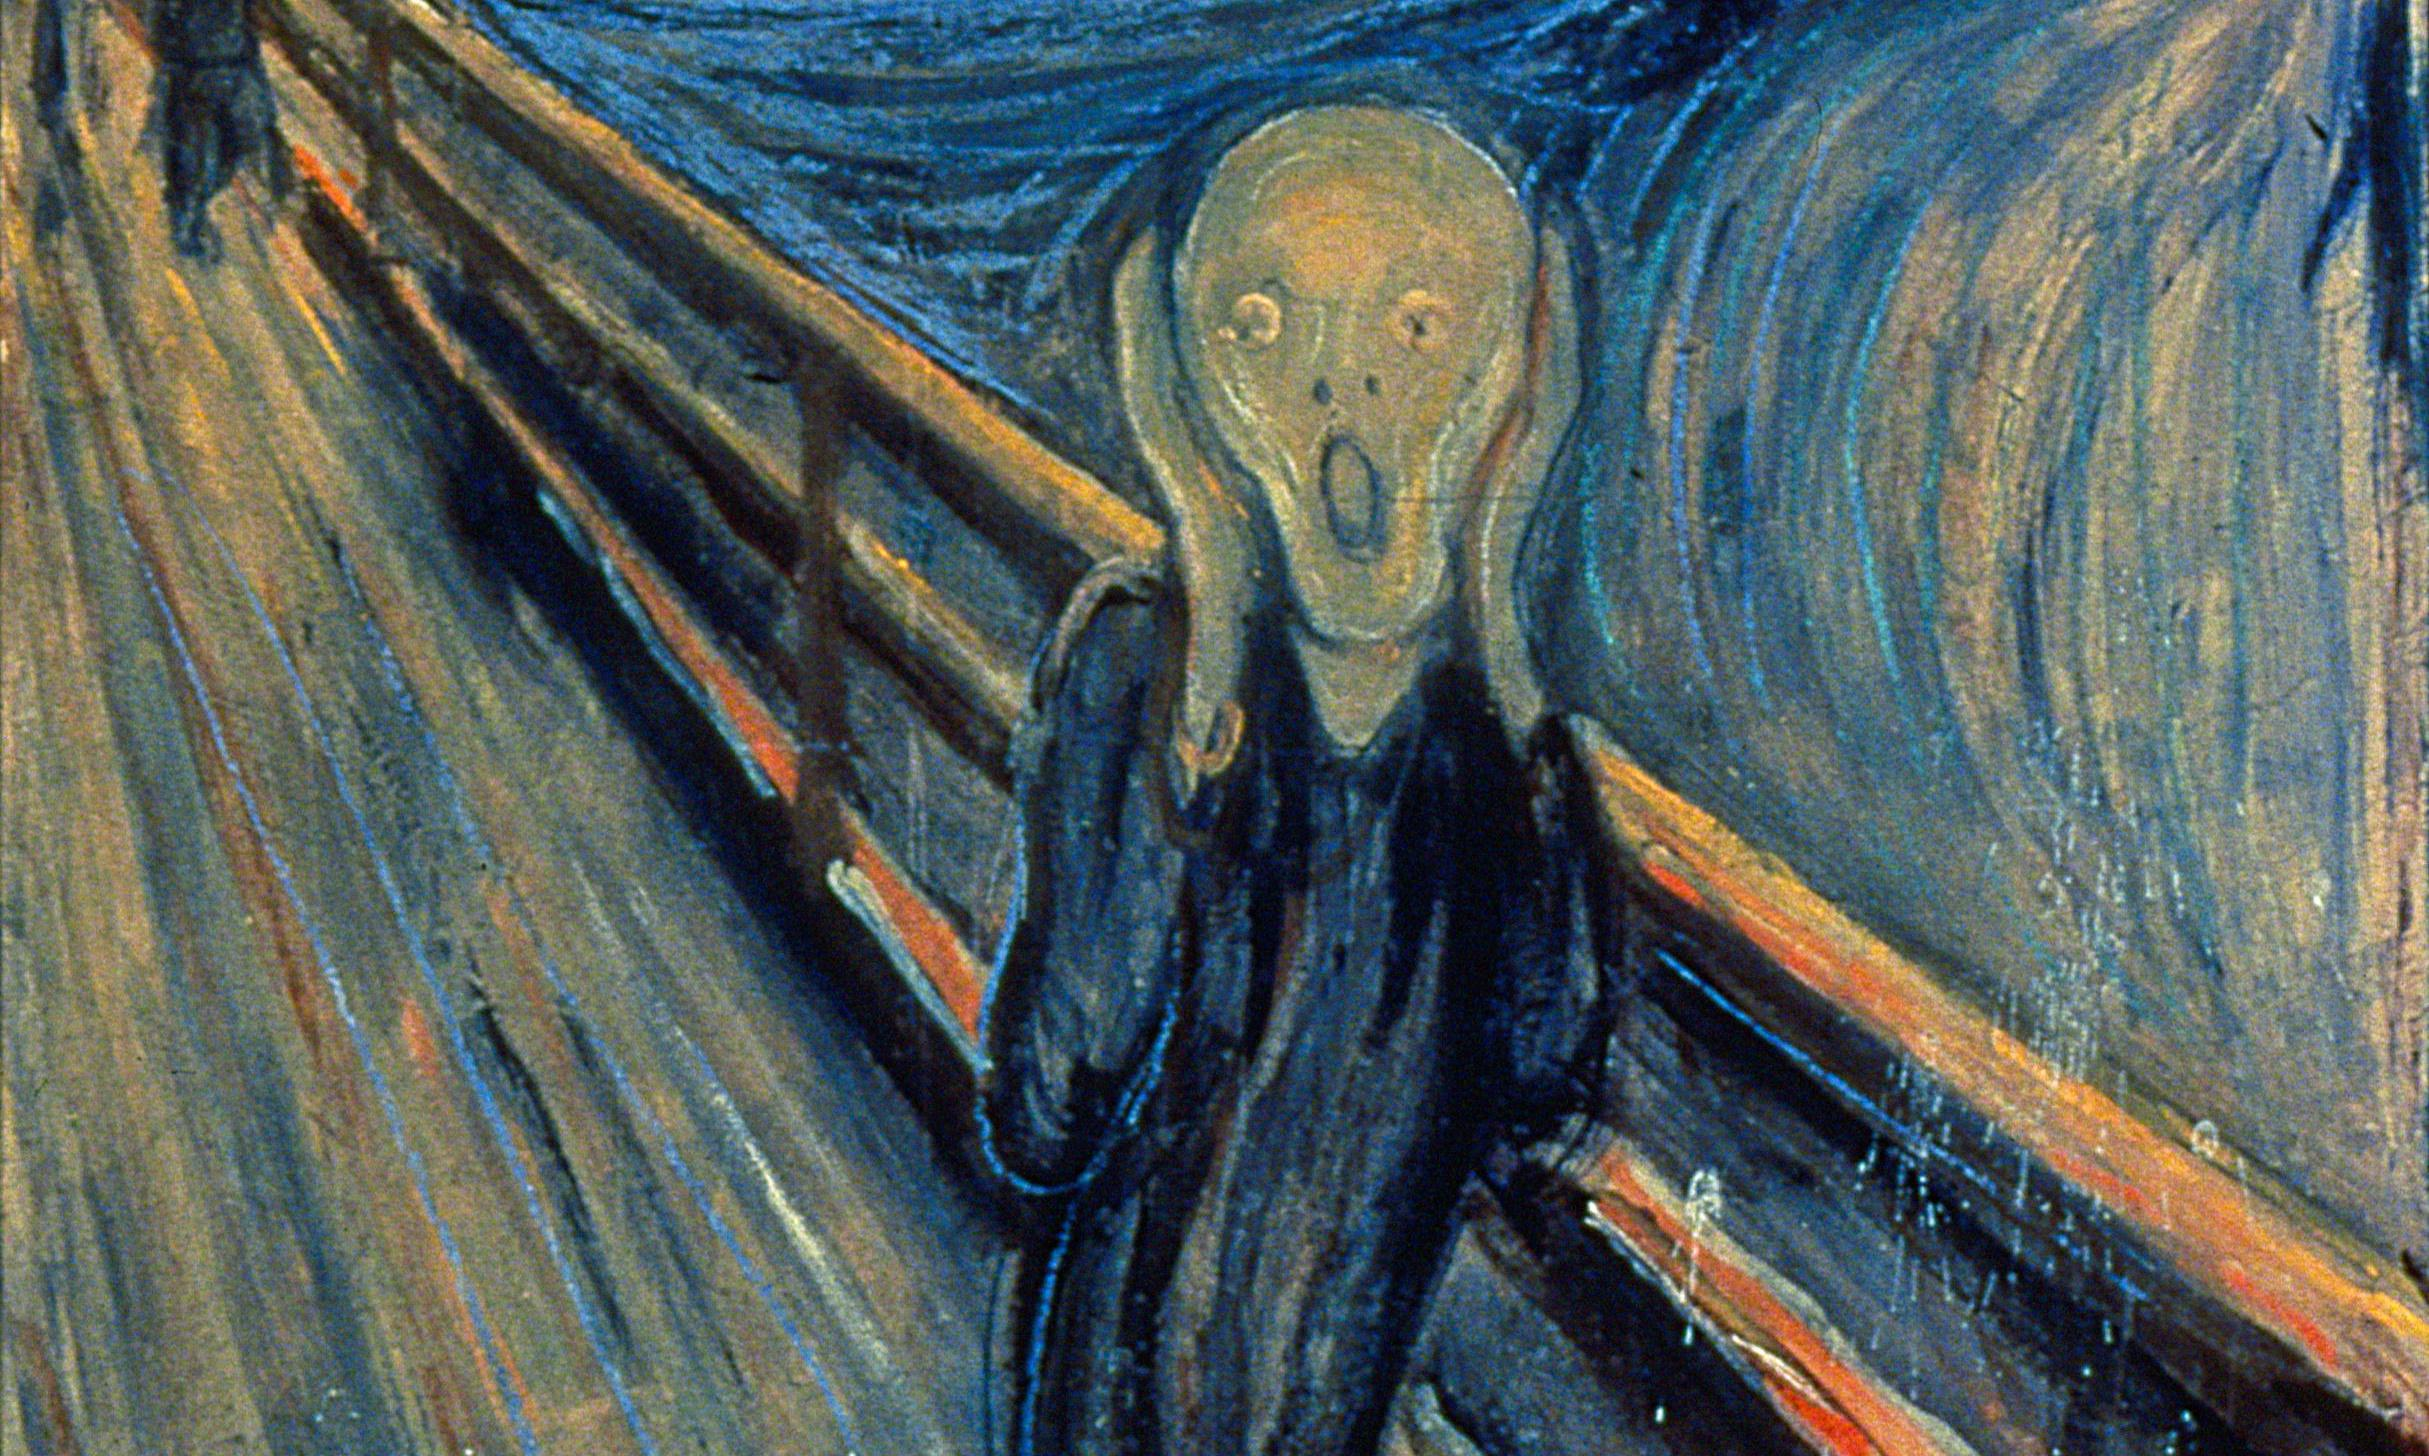 How The Scream became the ultimate image for our political age